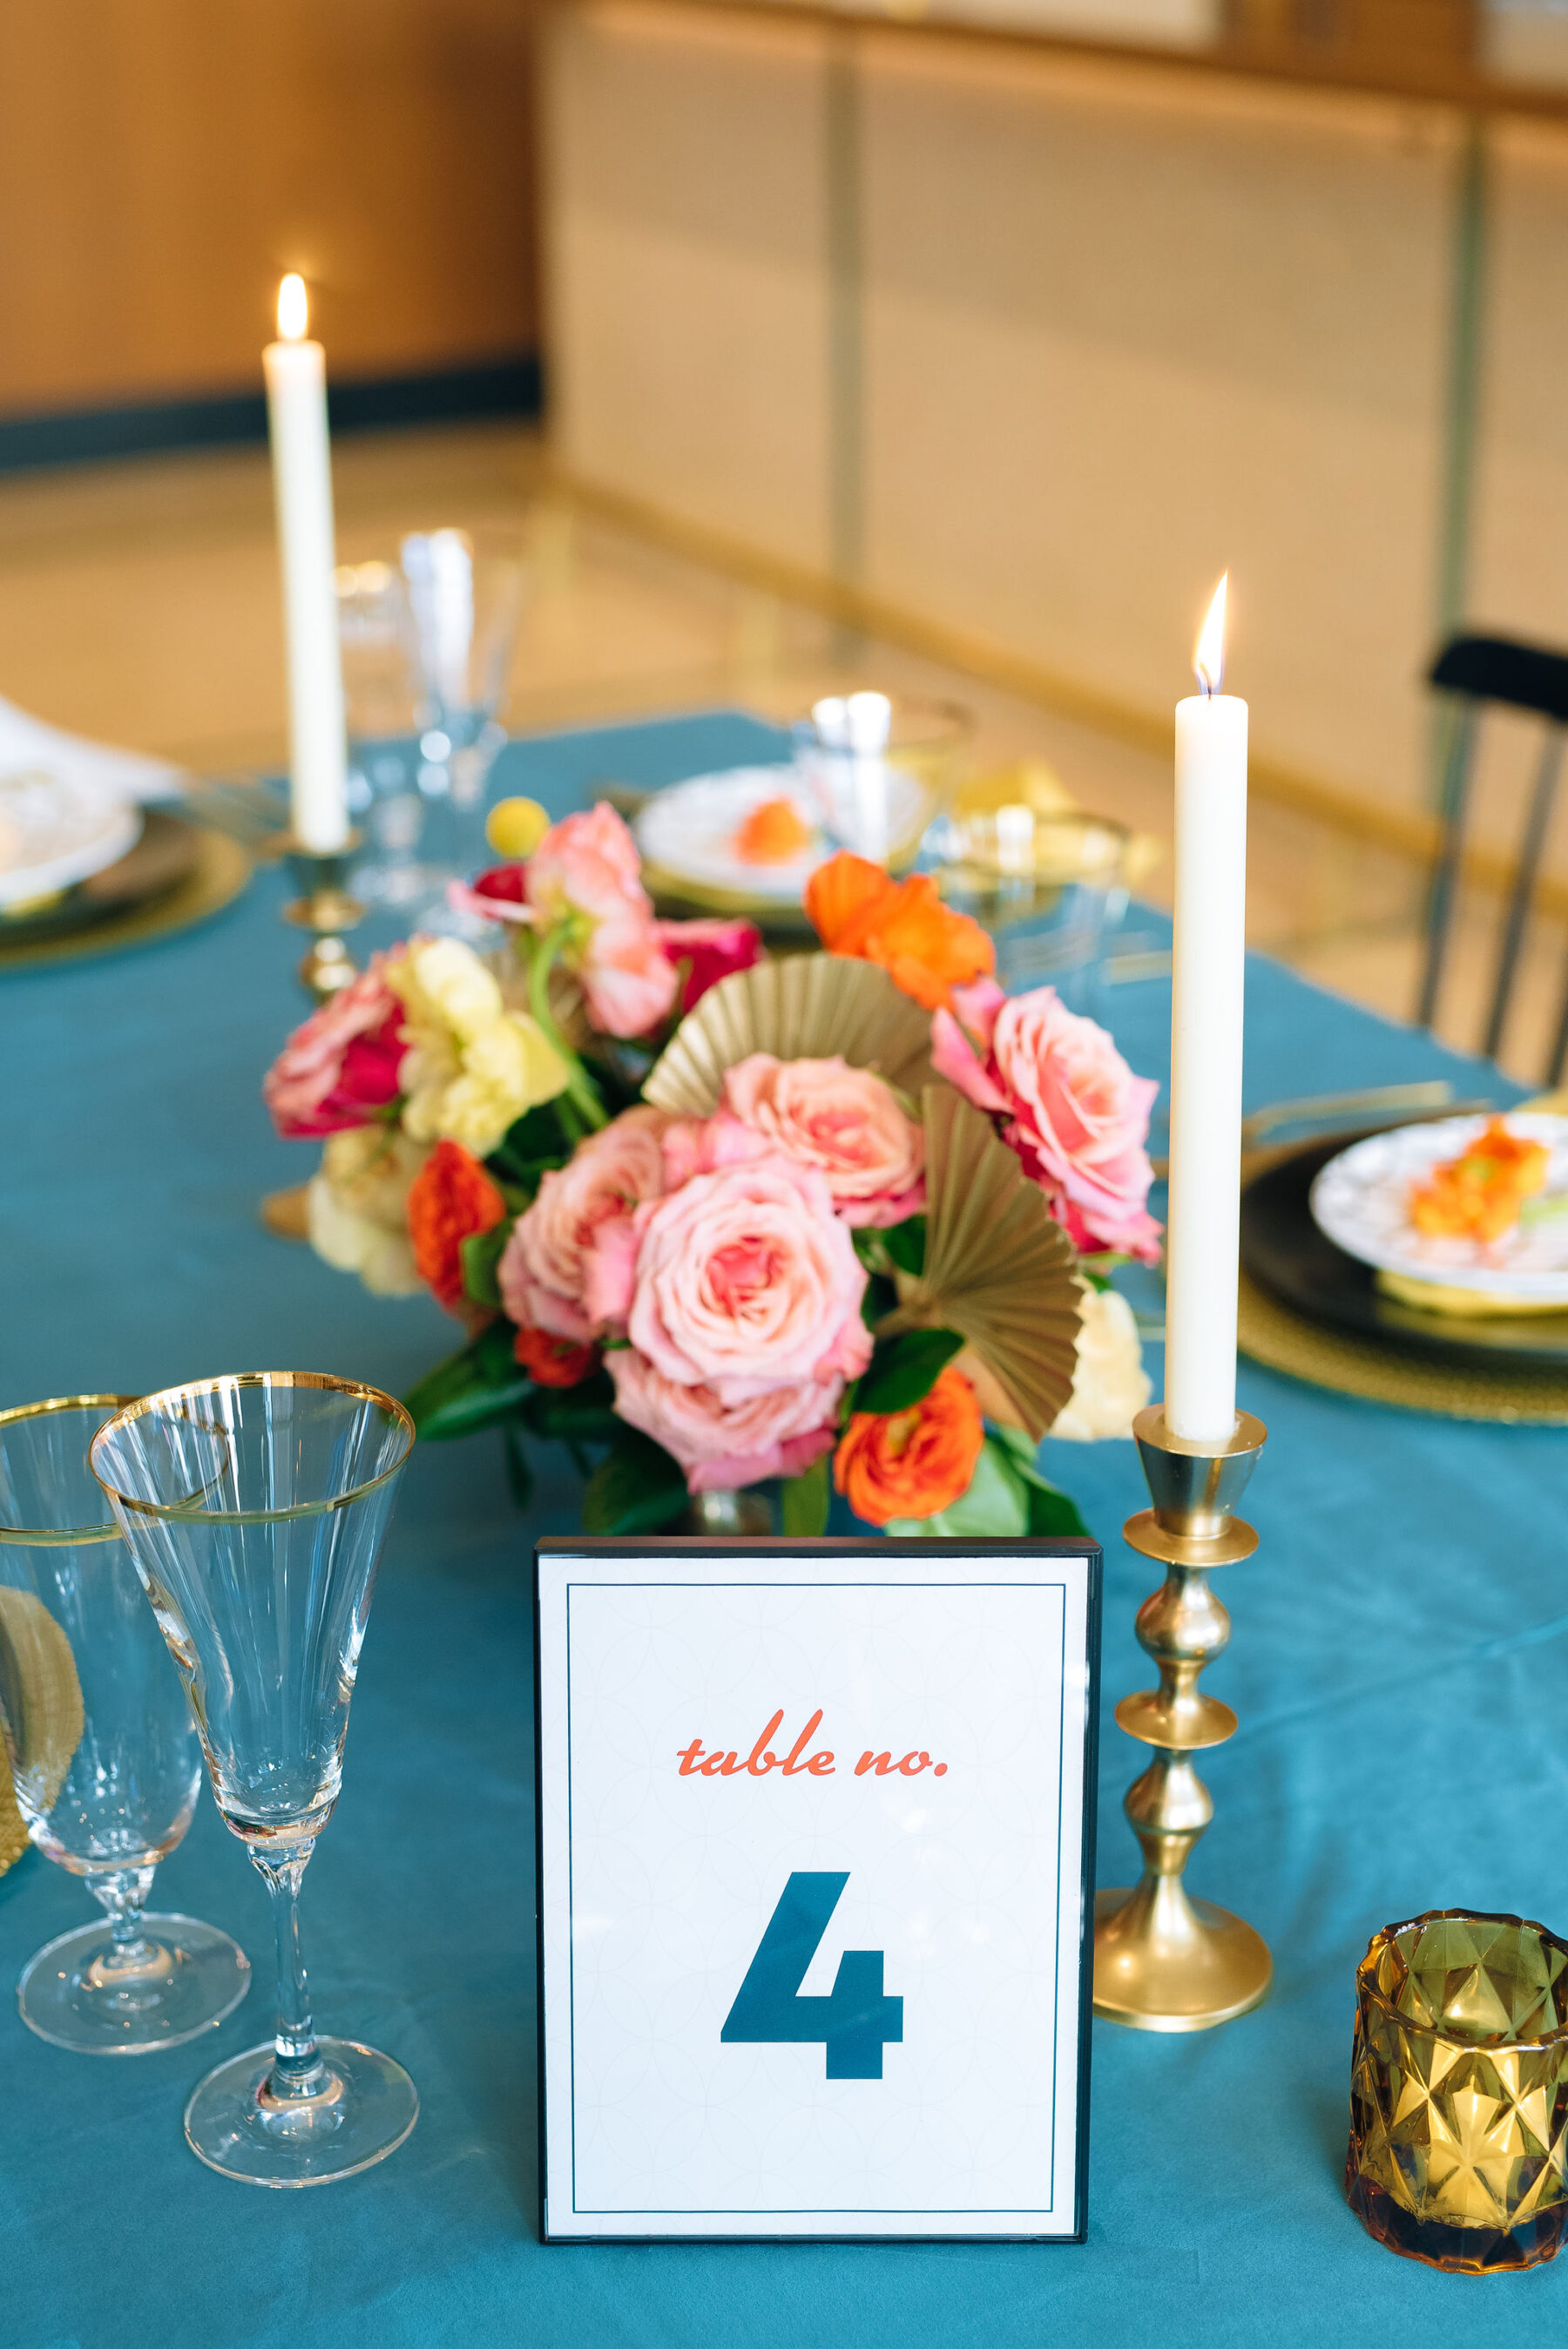 Retro wedding table number designs | Nashville Bride Guide